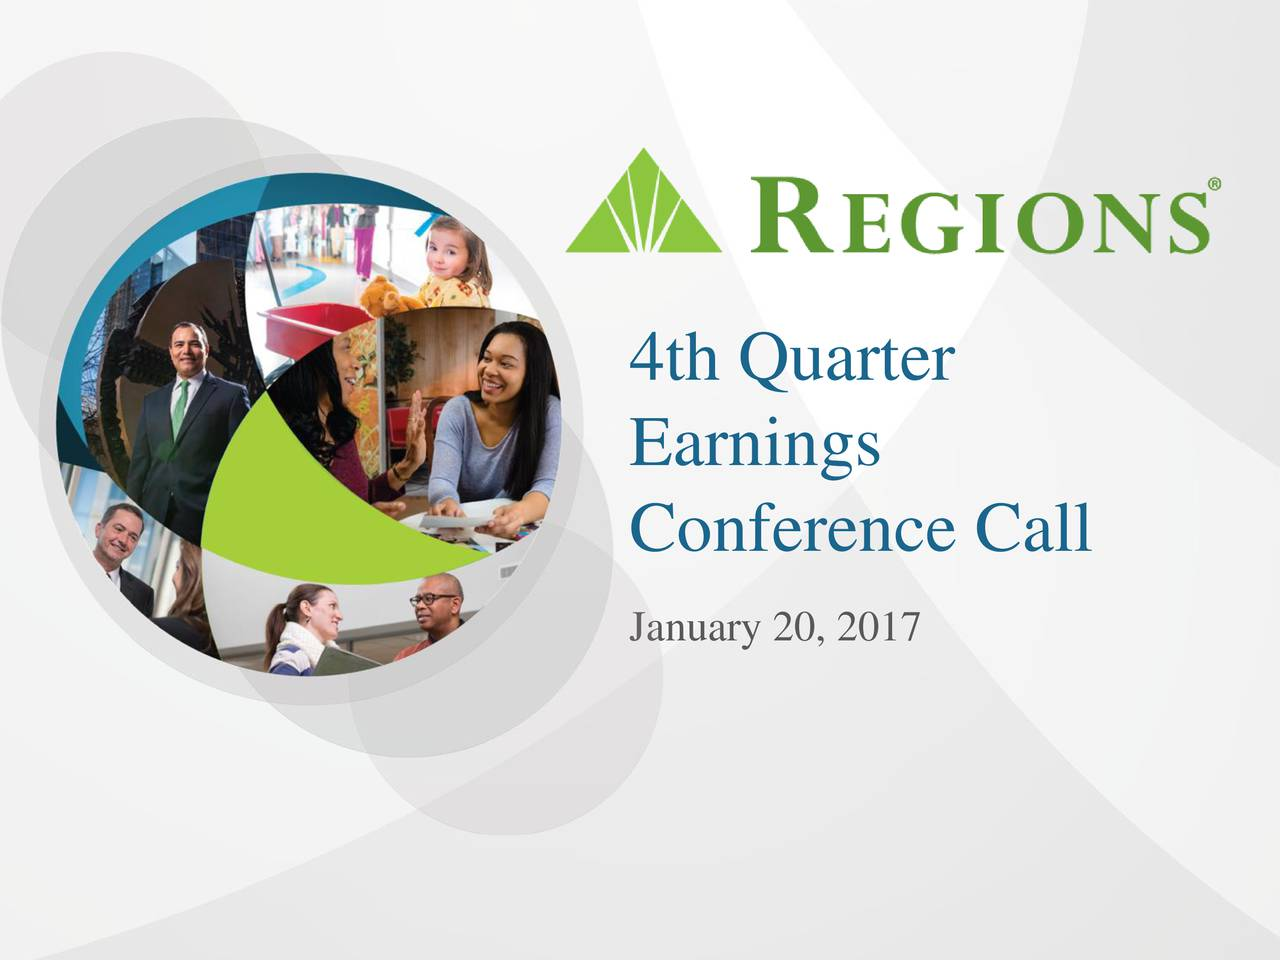 Earnings Conference Call January 20, 2017